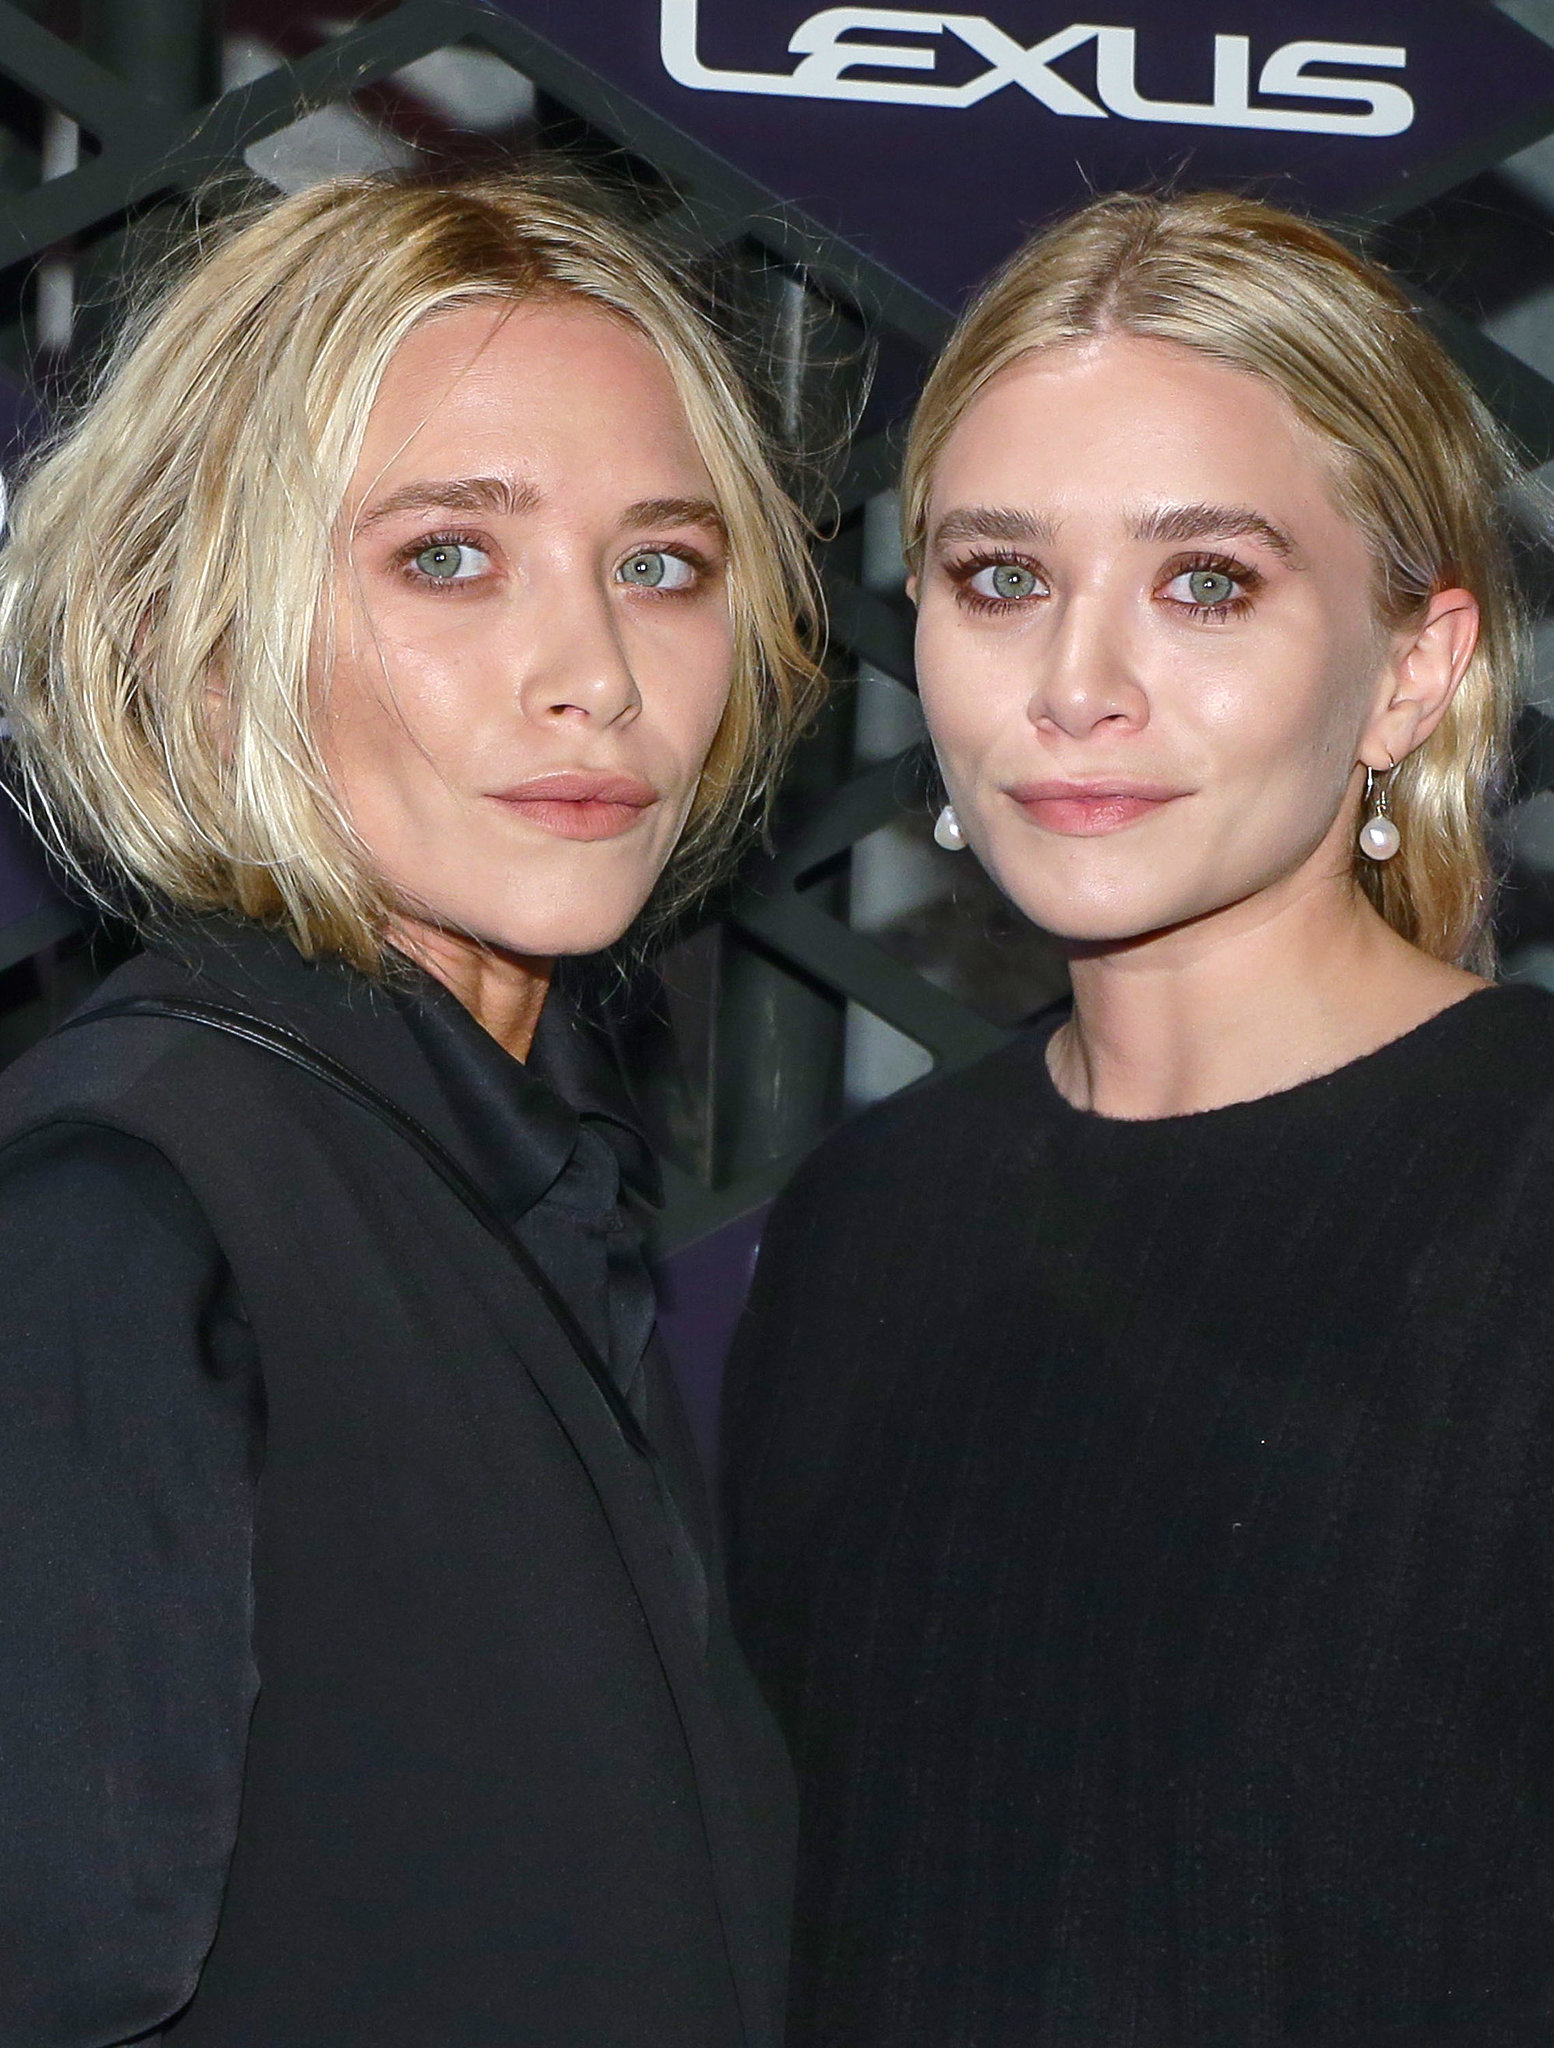 Later in 2013, the pair rocked on-trend pink eye makeup at the Lexus Design Disrupted Event. Mary-Kate also changed up her style by wearing her blond hair tucked into her outfit.